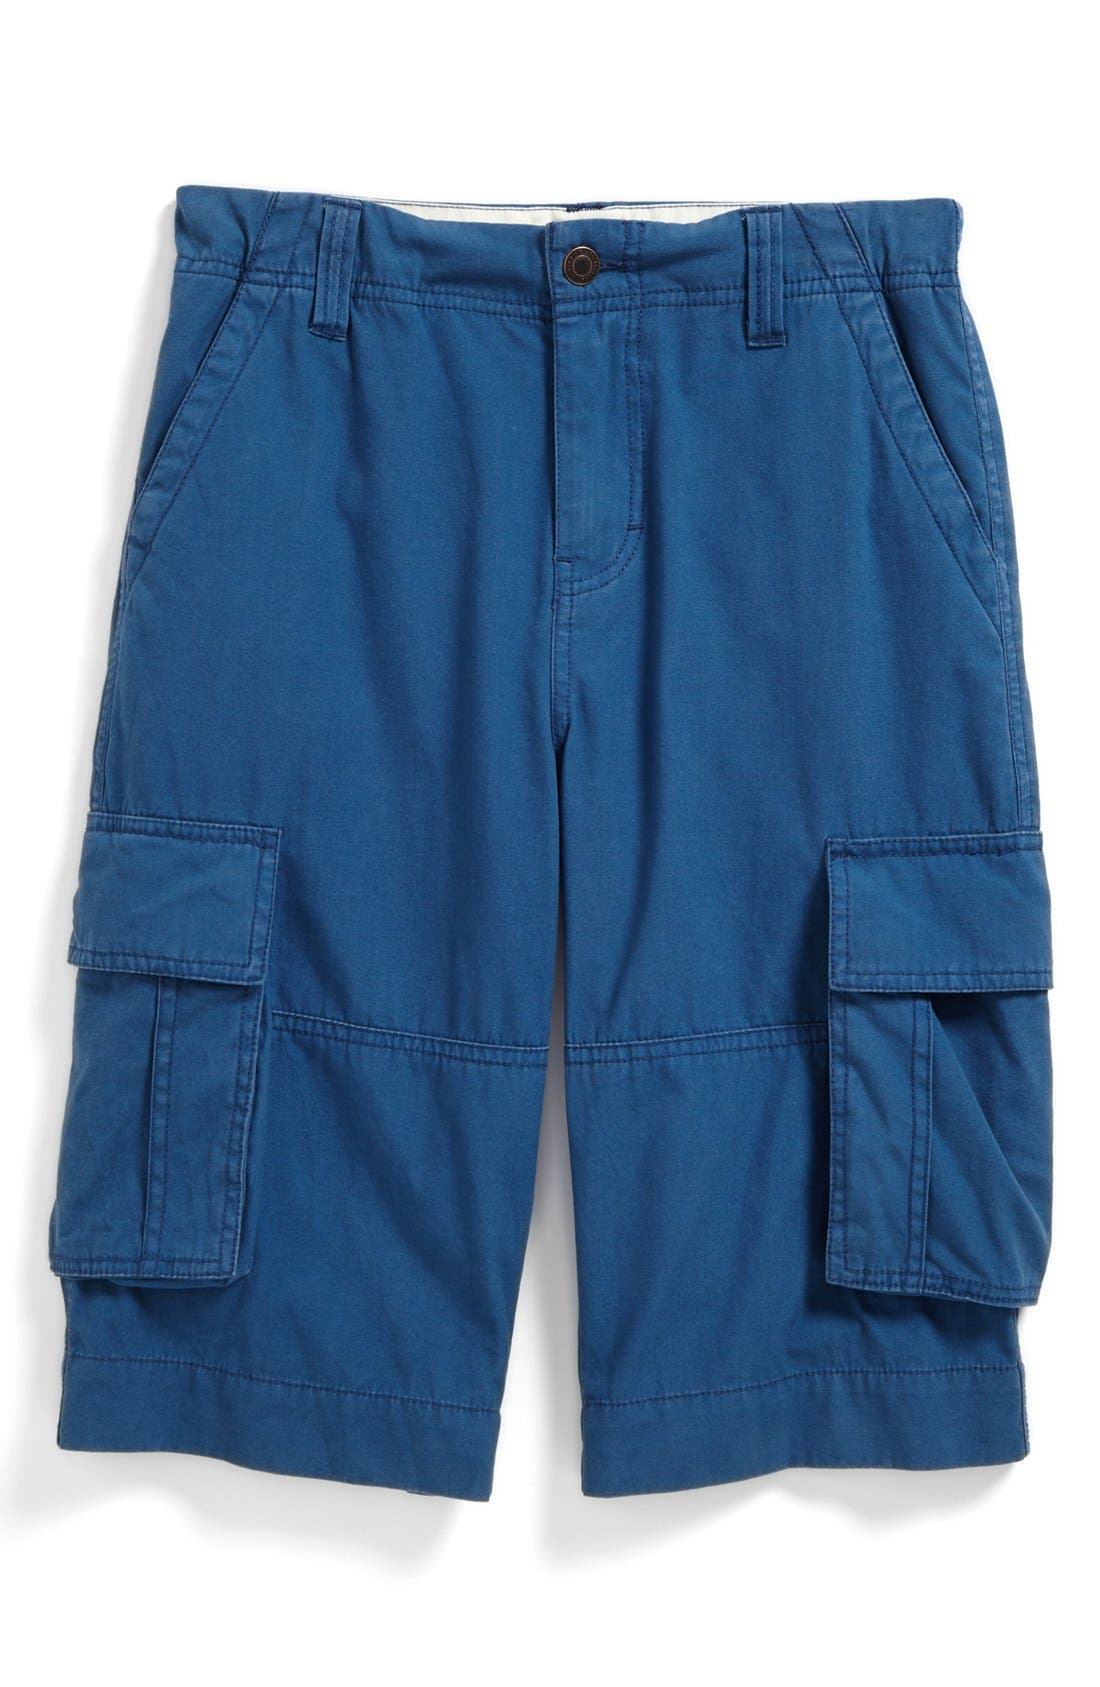 Alternate Image 1 Selected - Tucker + Tate Cargo Shorts (Big Boys)